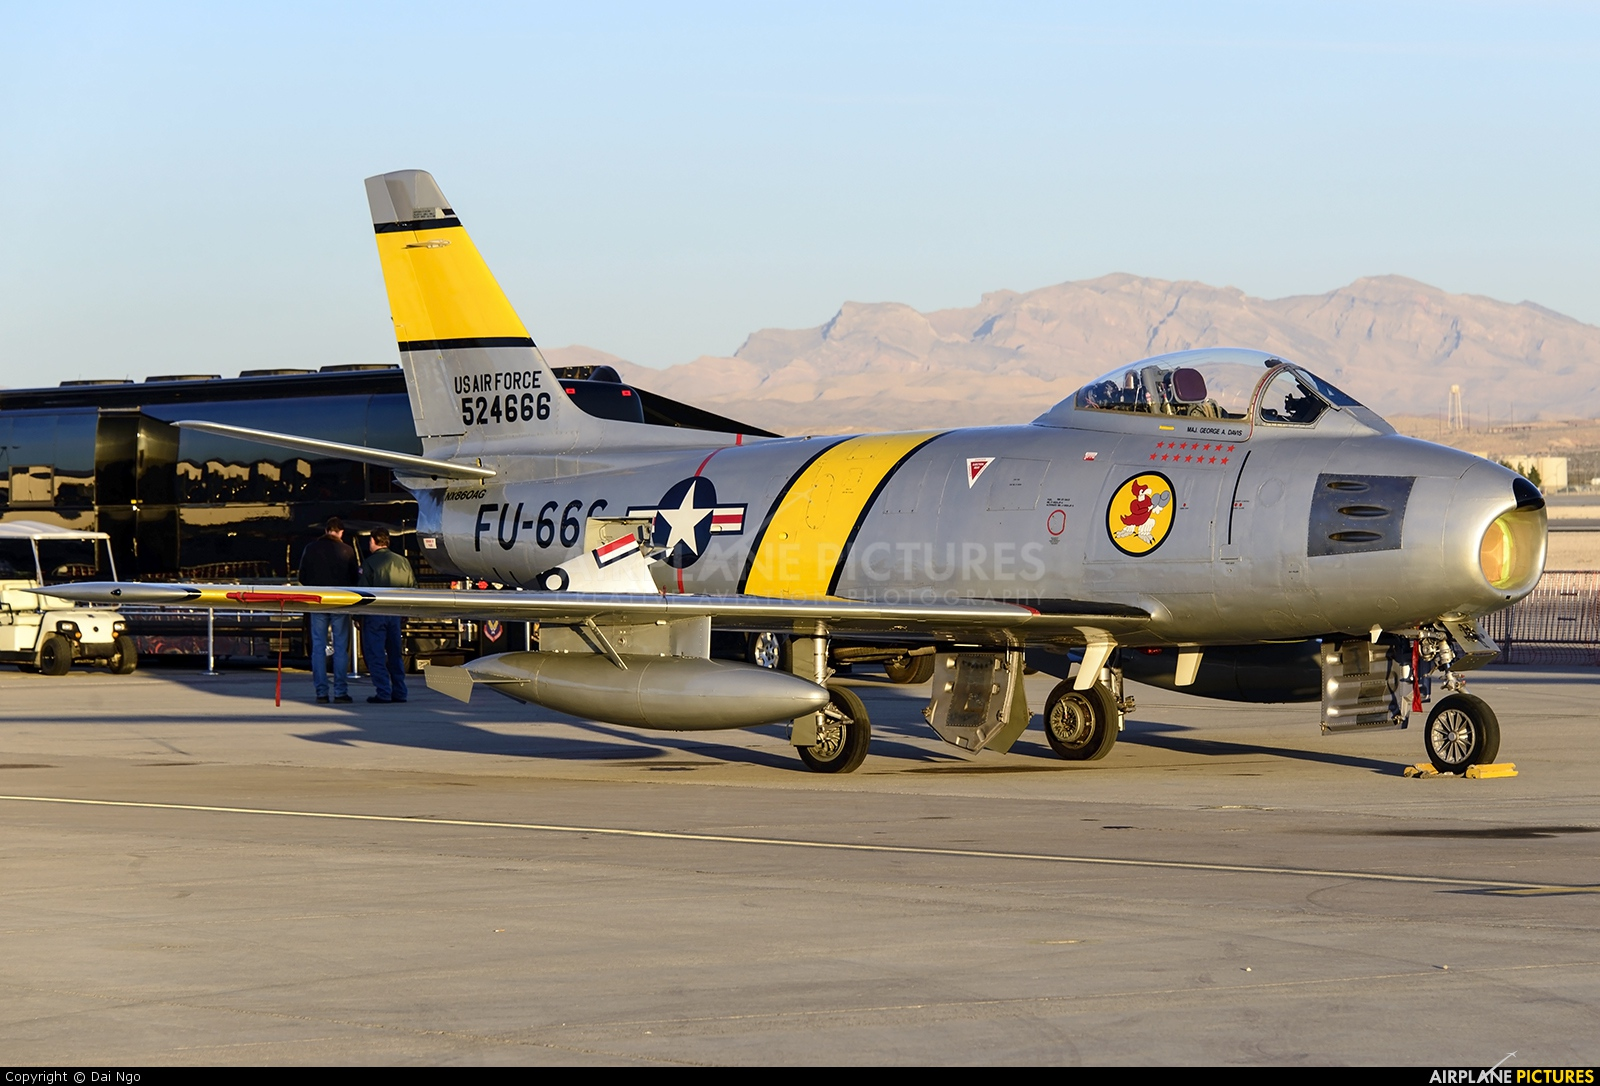 Private NX860AG aircraft at Nellis AFB